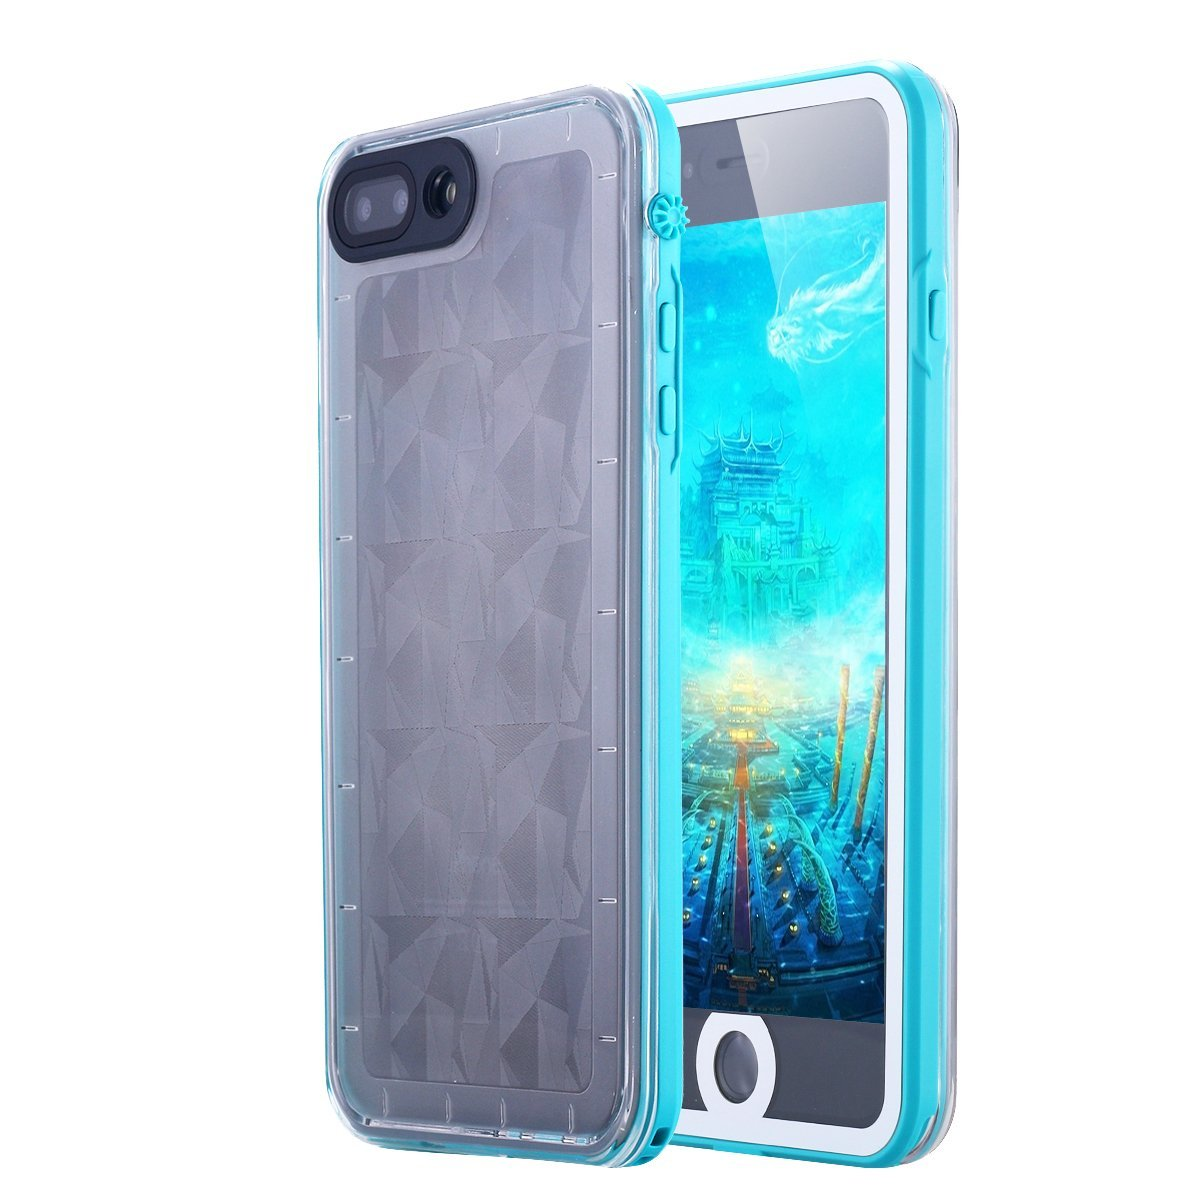 iPhone 7 Plus Case, LONTECT Slim Thin iPhone 7 Plus Waterproof Shockproof Dirtproof Snowproof Case with Clear Back Cover for Apple iPhone 7 Plus - Teal